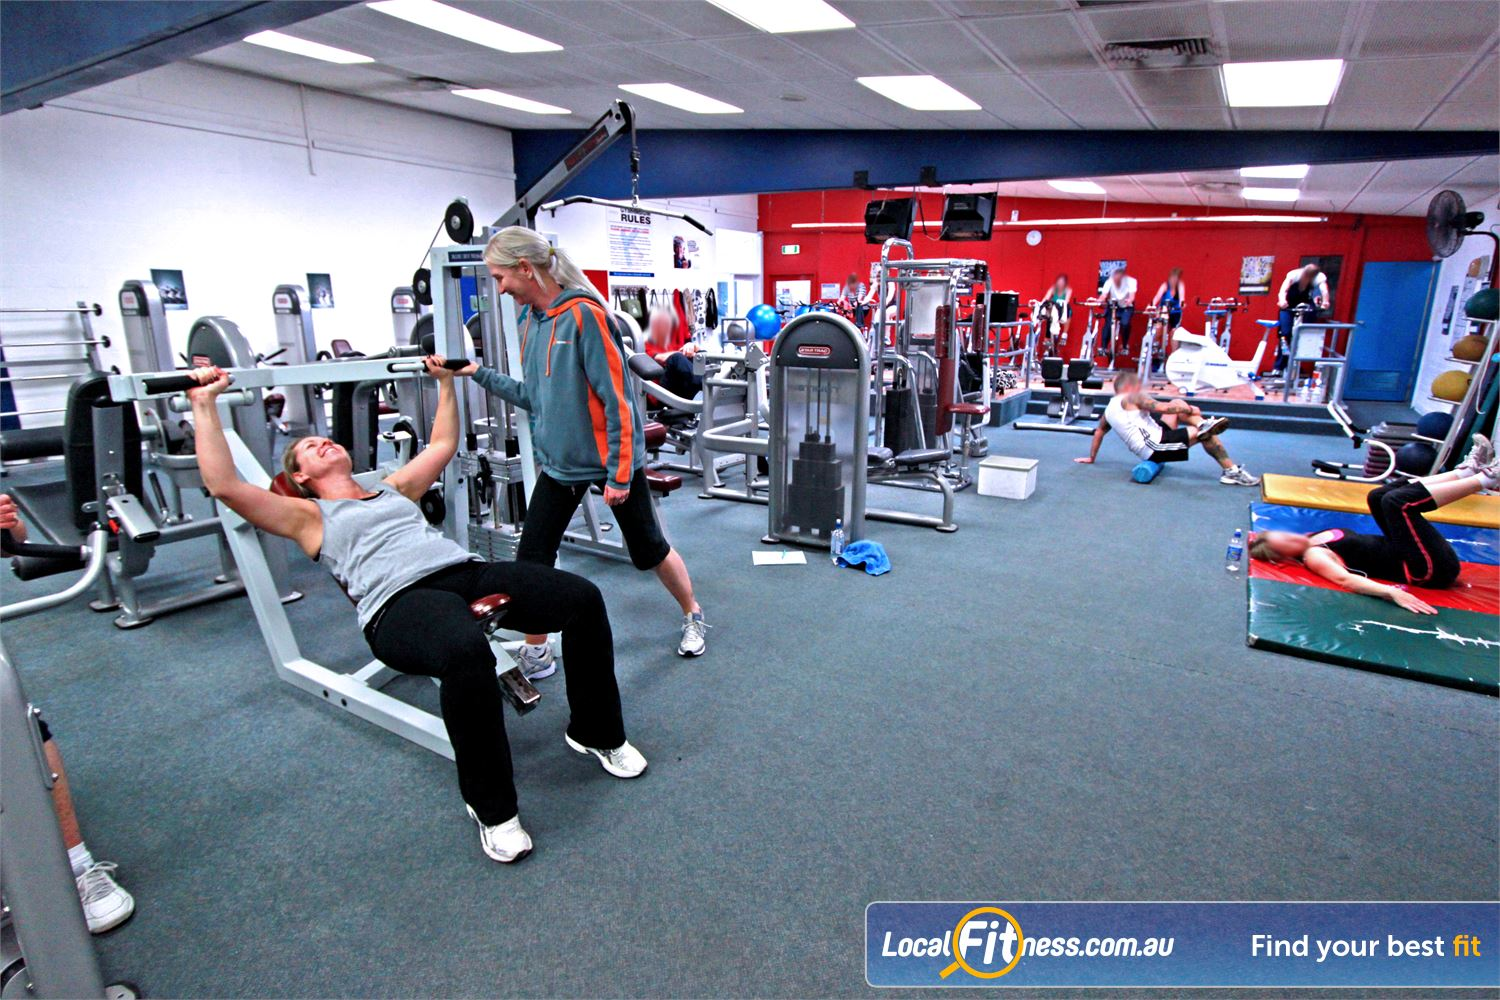 East Keilor Leisure Centre Near Niddrie Our friendly East Keilor personal trainers will help you reach your strength goals.